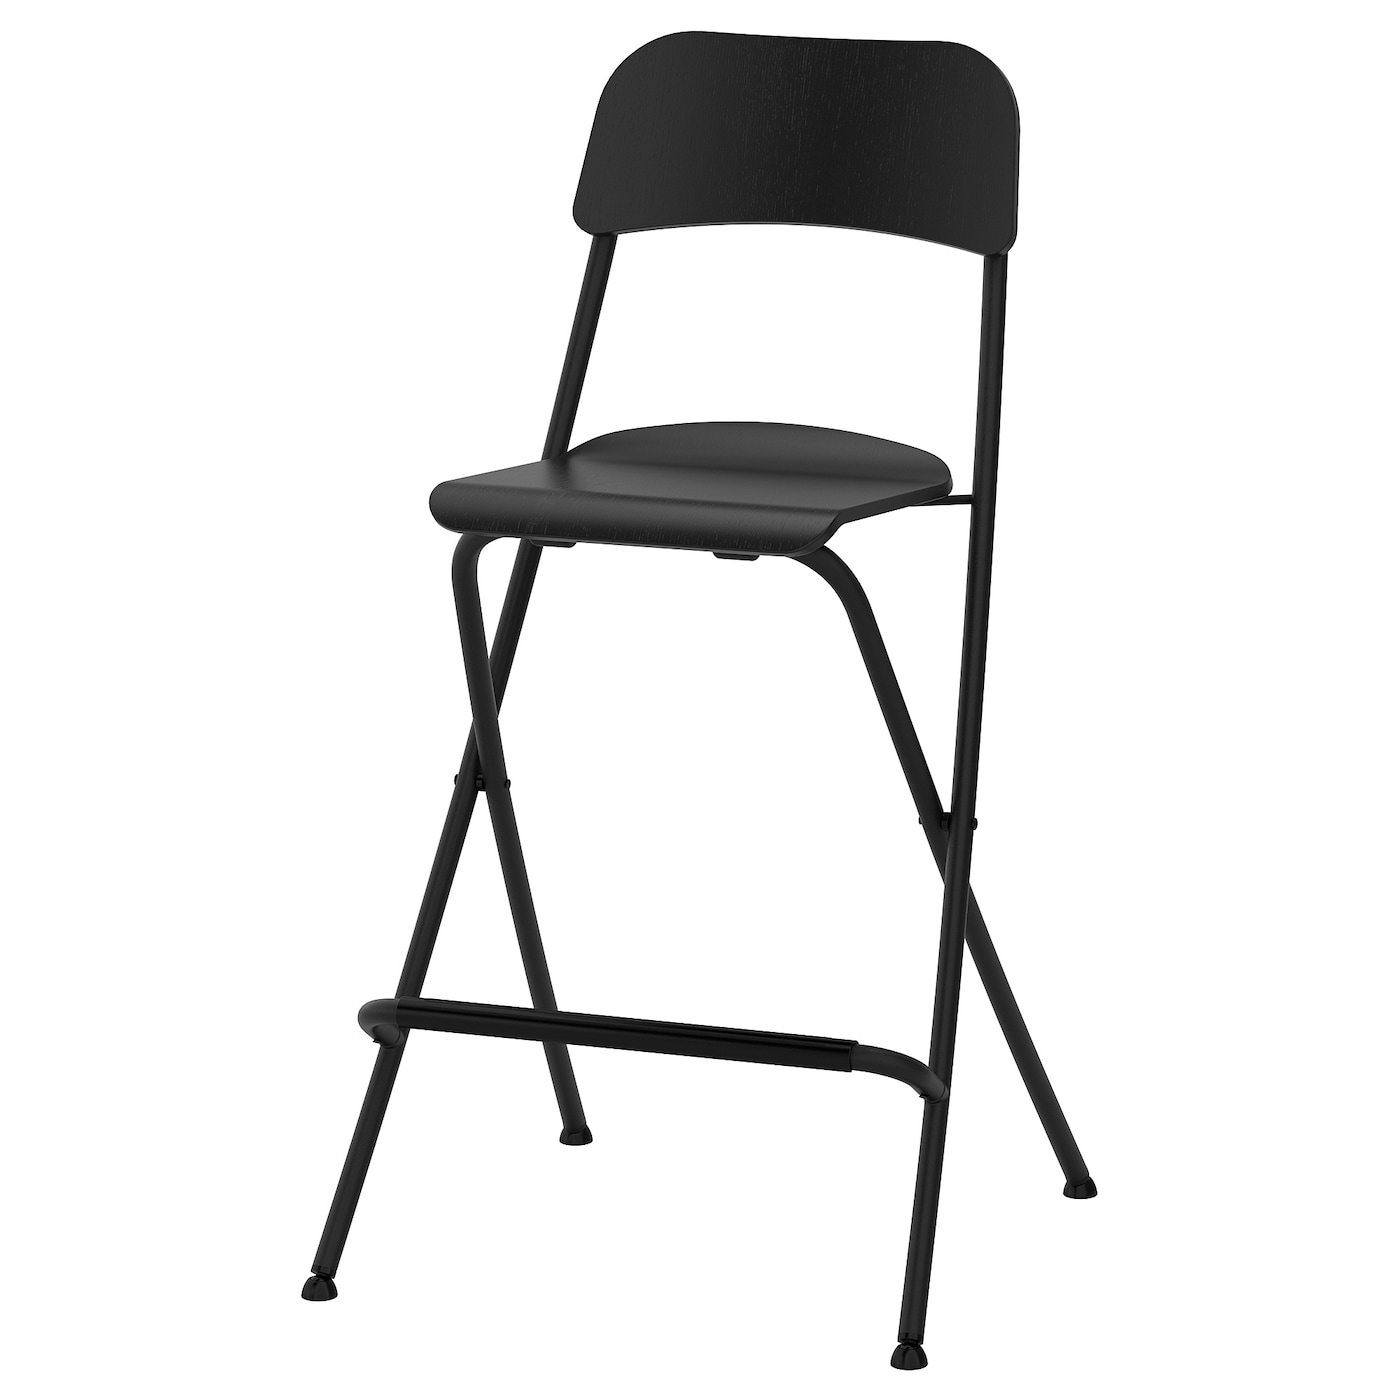 Pleasing Bar Stool With Backrest Foldable Franklin Black Black Uwap Interior Chair Design Uwaporg